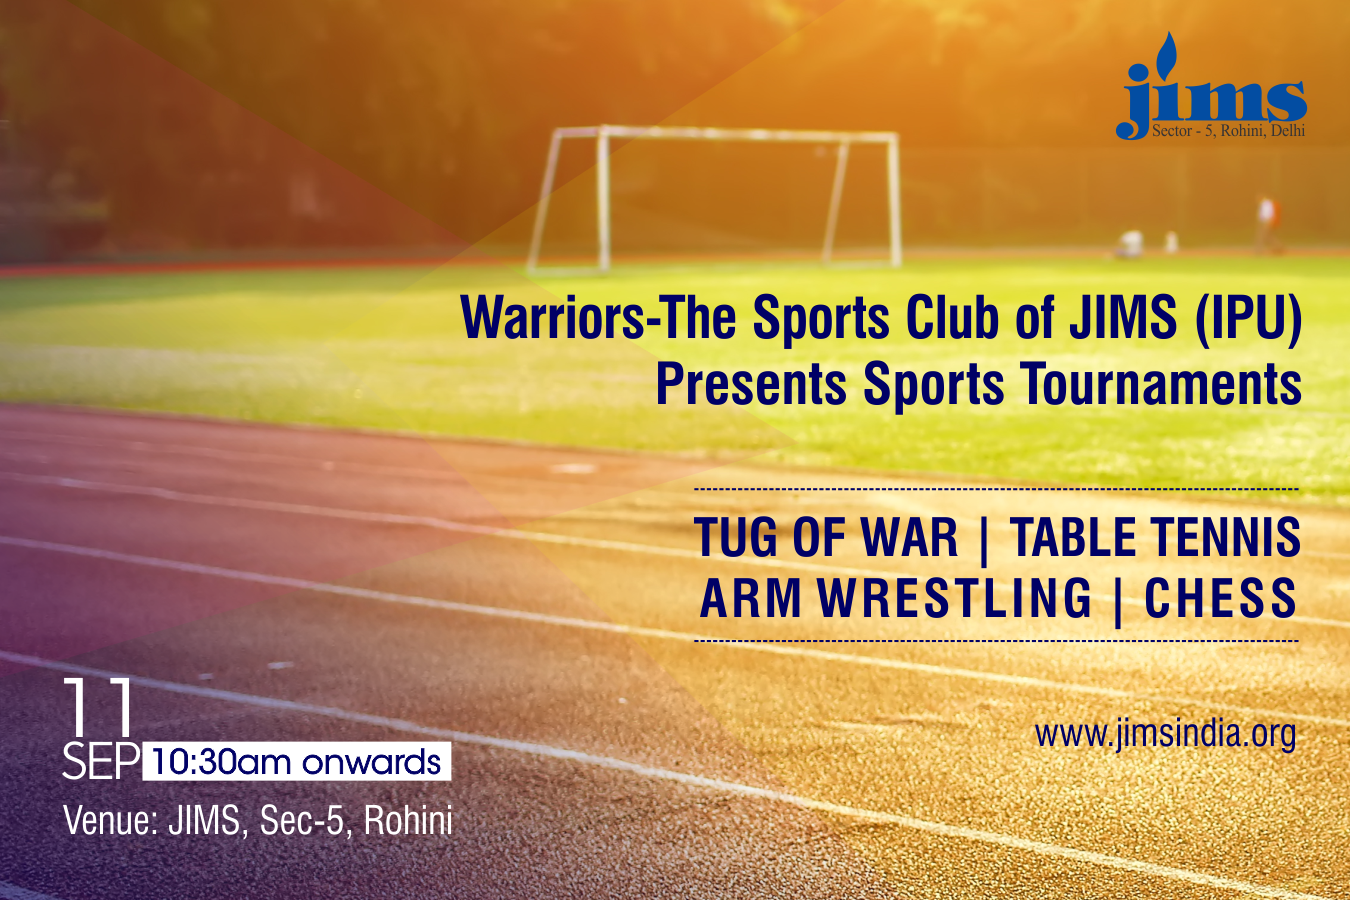 JIMS, Rohini sports club Warriors is organizing sports tournament on September 11, 2019 from 10:30 am onwards